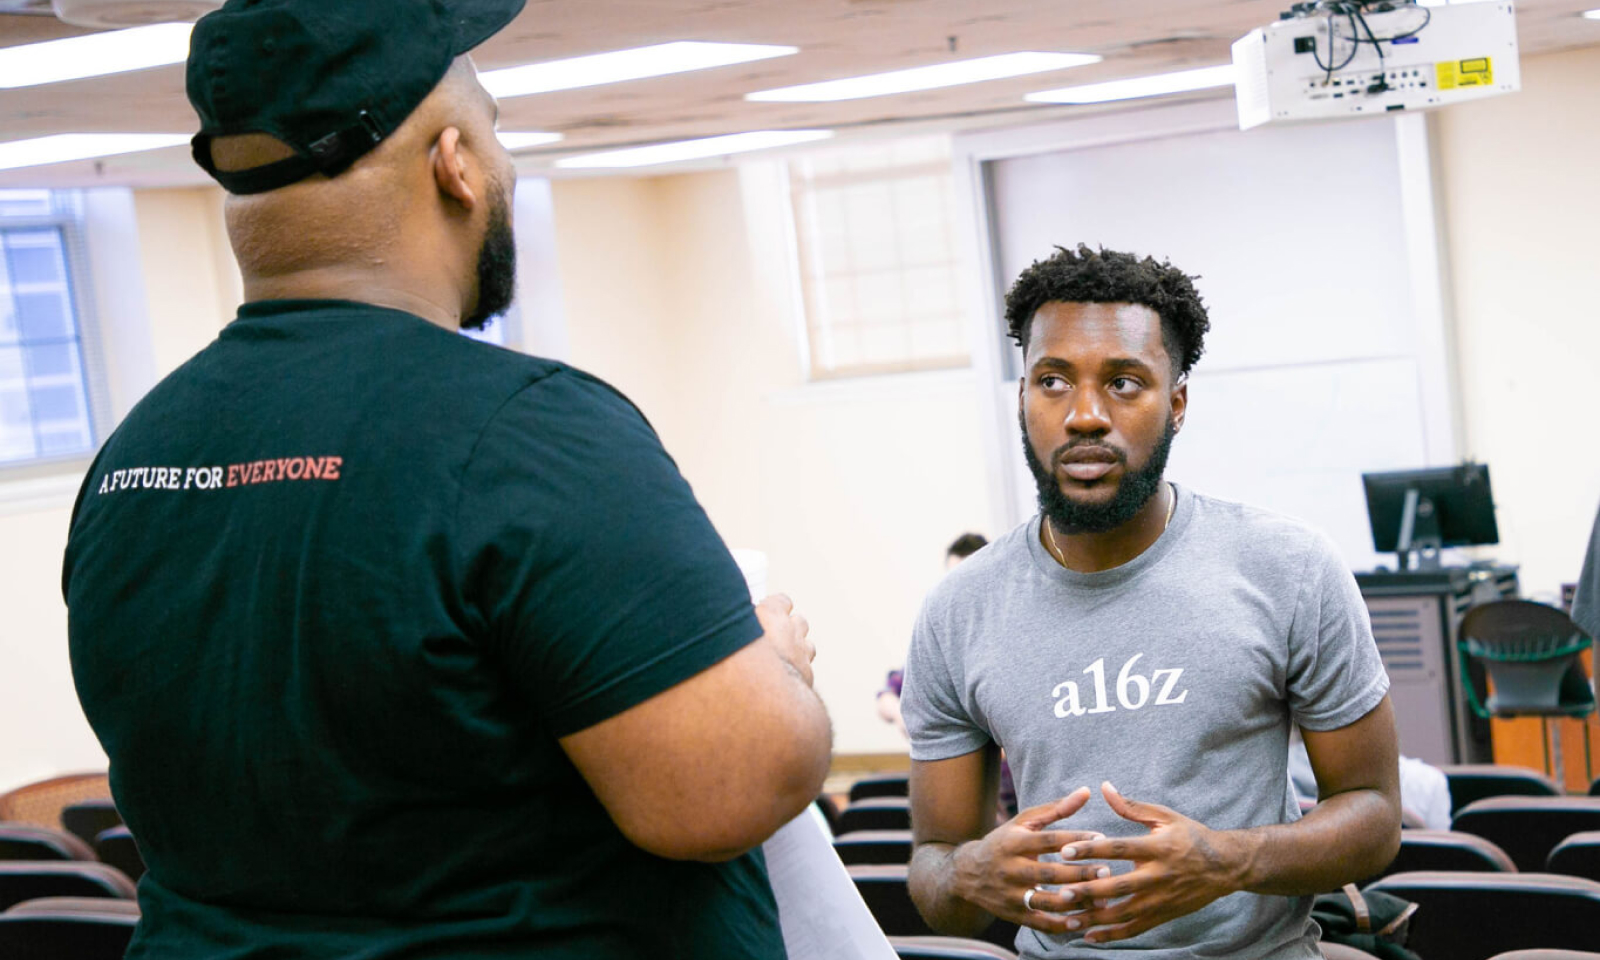 Maurice Wilkins, Diversity, Equity, and Inclusion Manager is discussing careers in Silicon Valley, with Nashawn Chery, a student at Morehouse College.